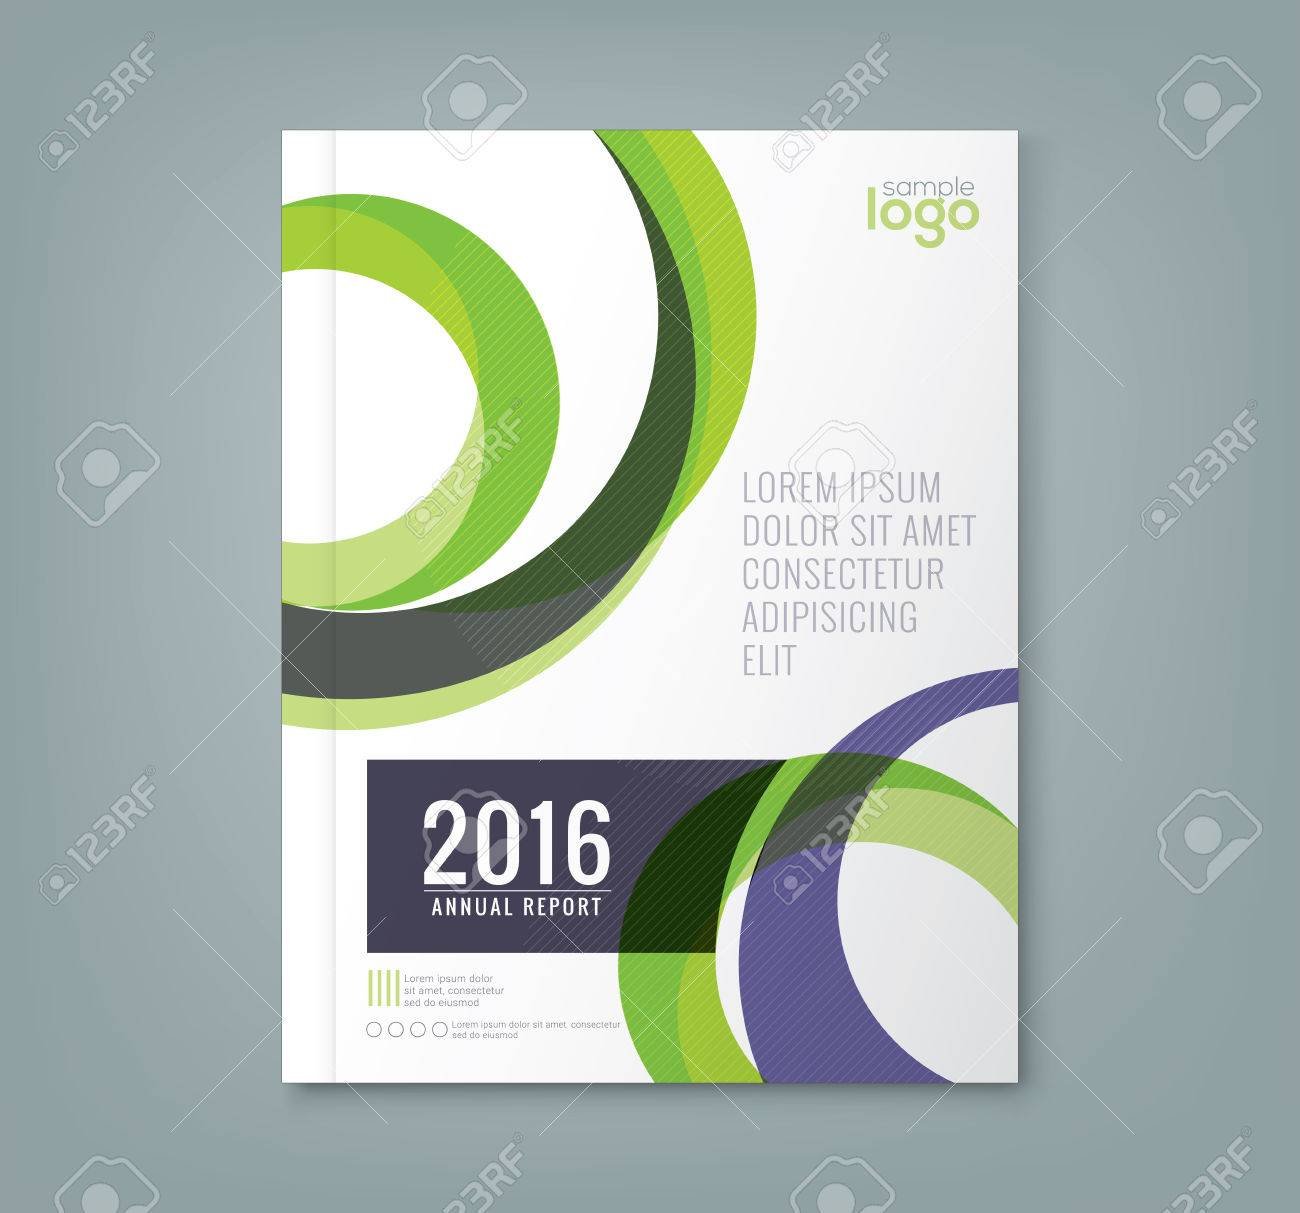 Abstract minimal geometric round circle shapes design background for business annual report book cover brochure flyer poster - 52125850